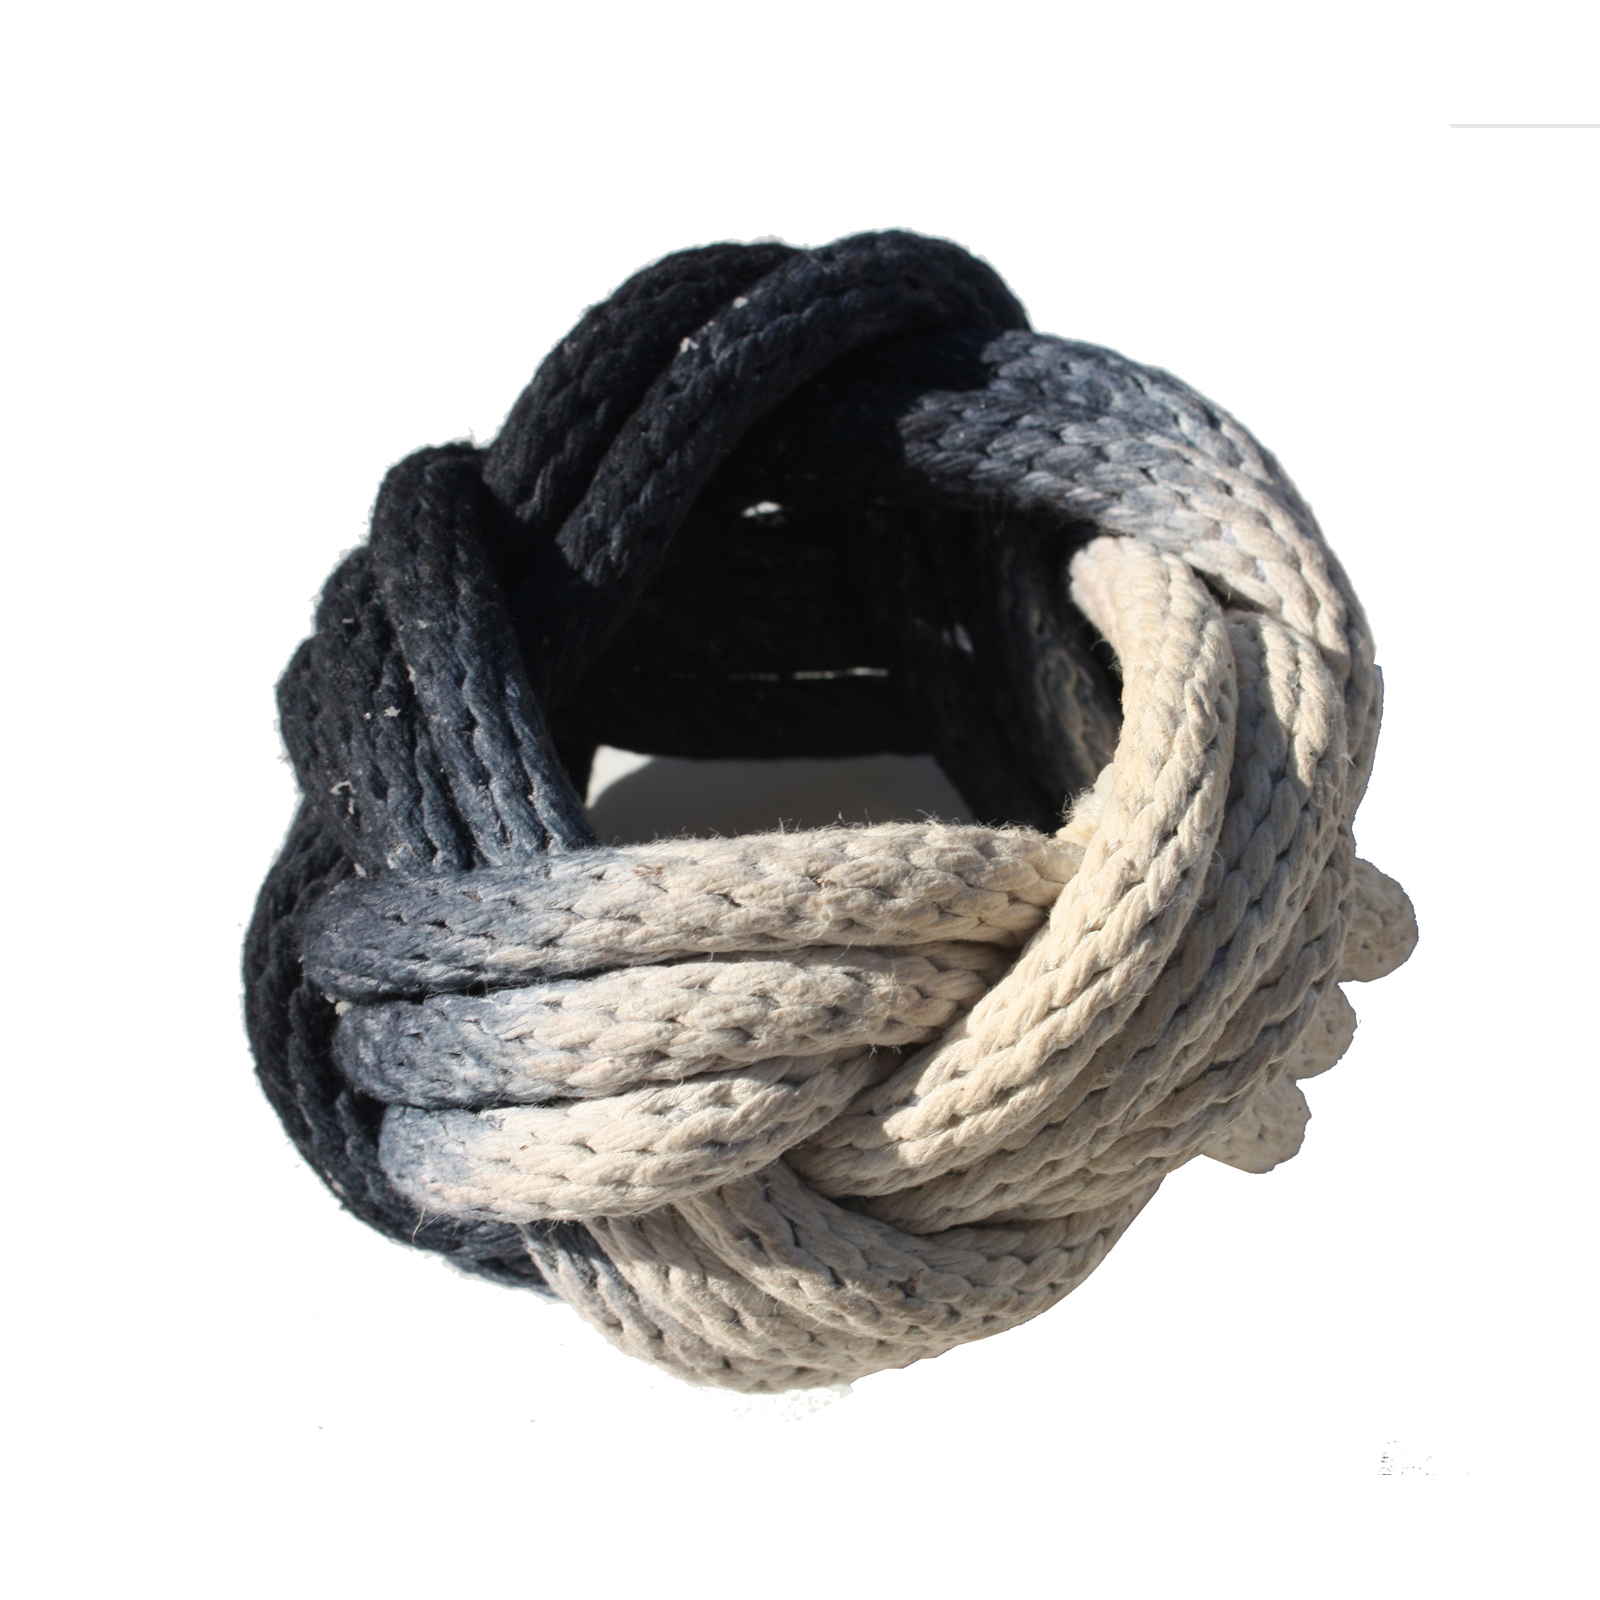 "<a href=""http://www.reformschoolrules.com/pc/ropebraceletred/mylocker/Tanya+Aguiniga+Rope+Bracelet"">Rope Bracelets</a> by <a href=""http://www.aguinigadesign.com"">Tanya Aguiñiga</a><br />Tanya is a local Los Angeles artist and a great friend. Her work neve"